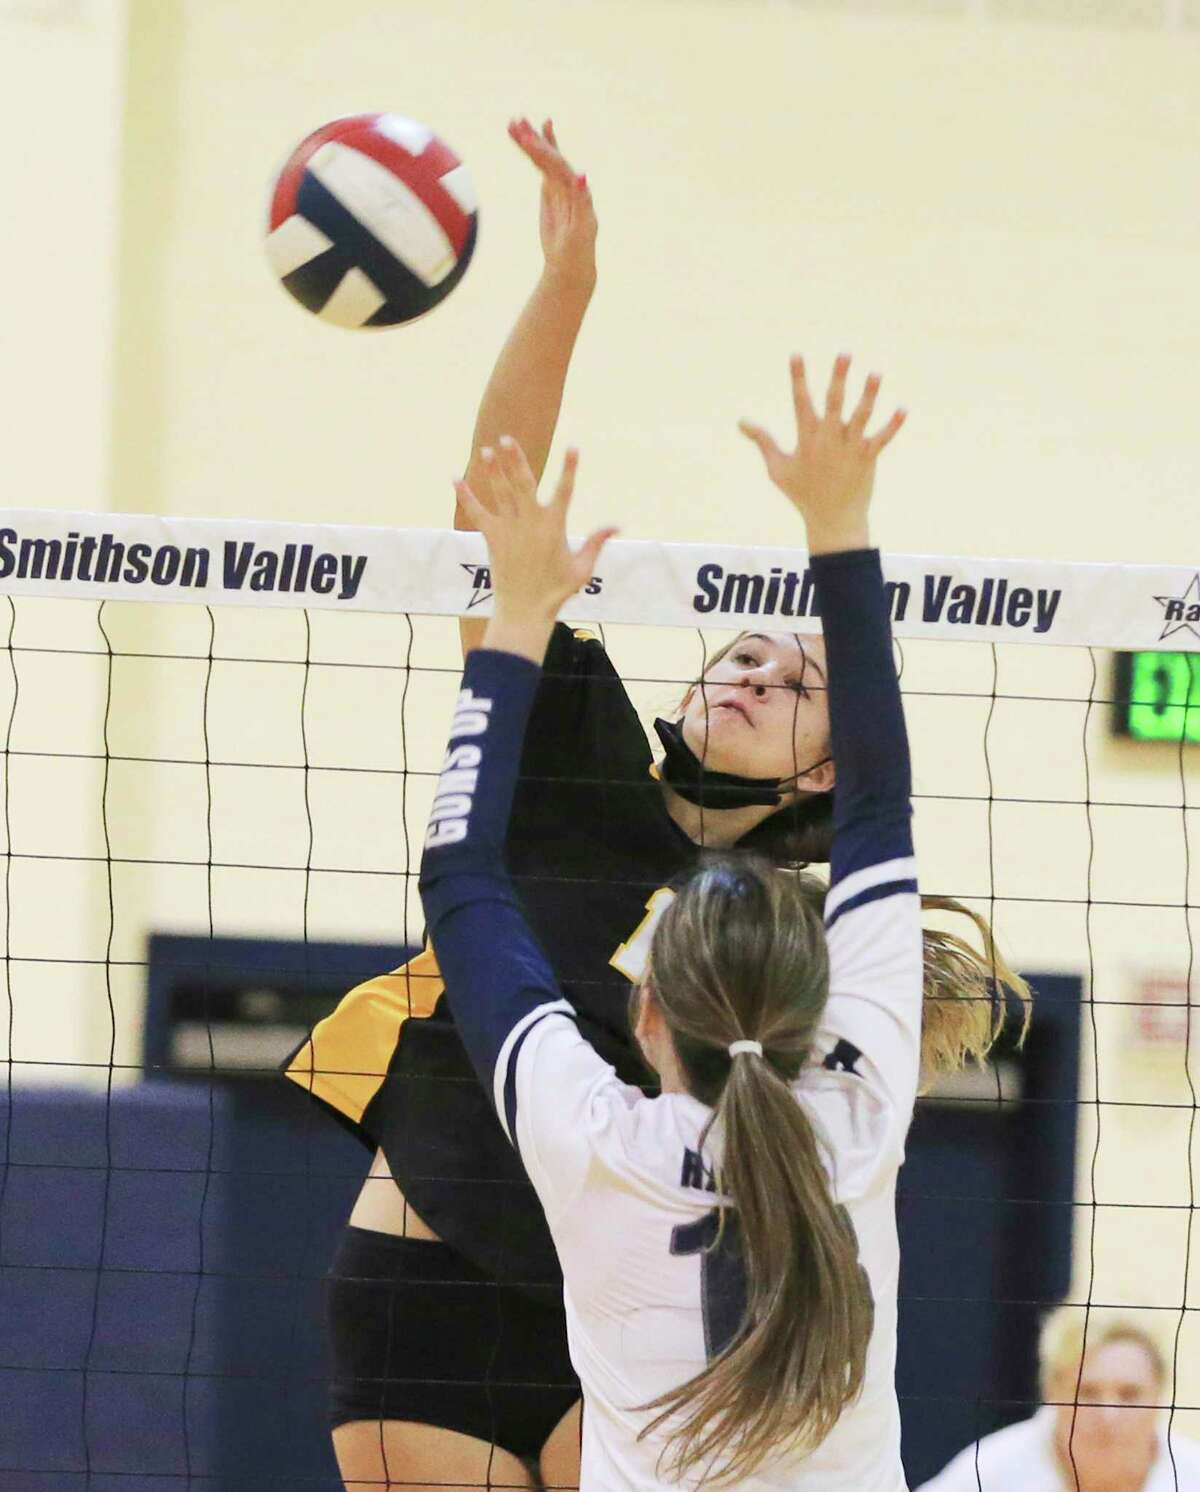 East Central's Nicole Pruski gets a kill over Smithson Valley's Lillie Johnson during their girls volleyball game at Smithson Valley on Tuesday, Sept. 28, 2021. Smithson Valley defeated East Central in three straight sets to take the match.